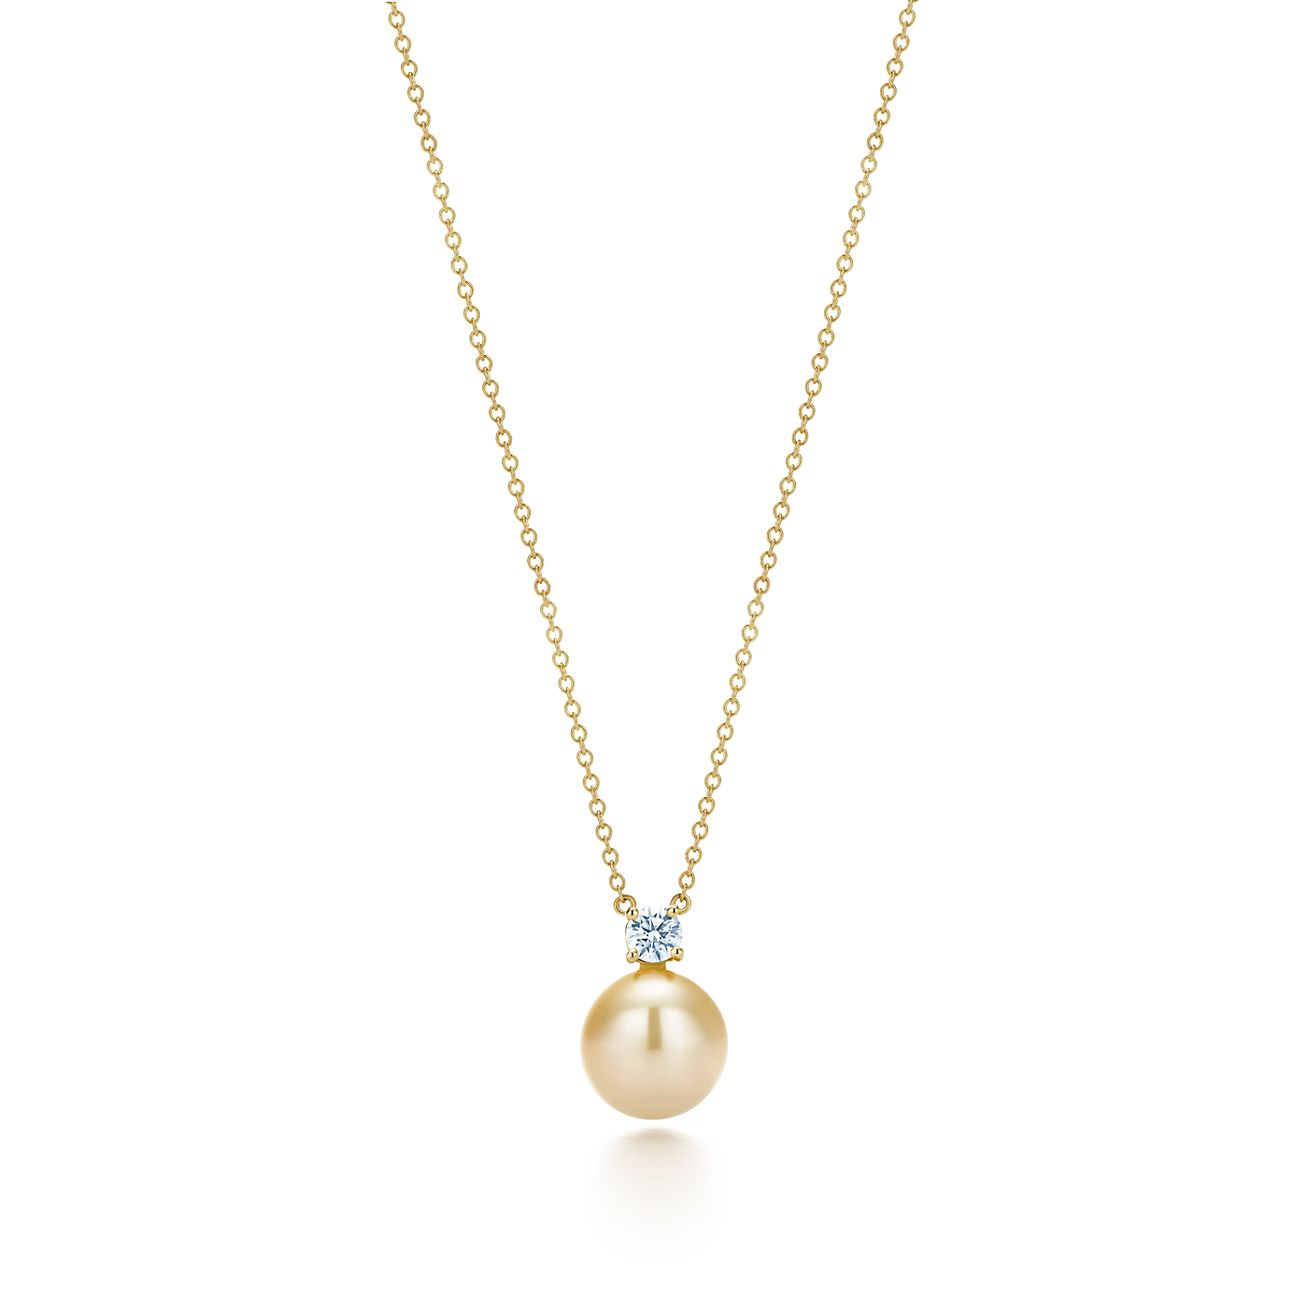 Tiffany south sea pearl pendant in 18k gold with diamonds tiffany south seapearl pendant aloadofball Images